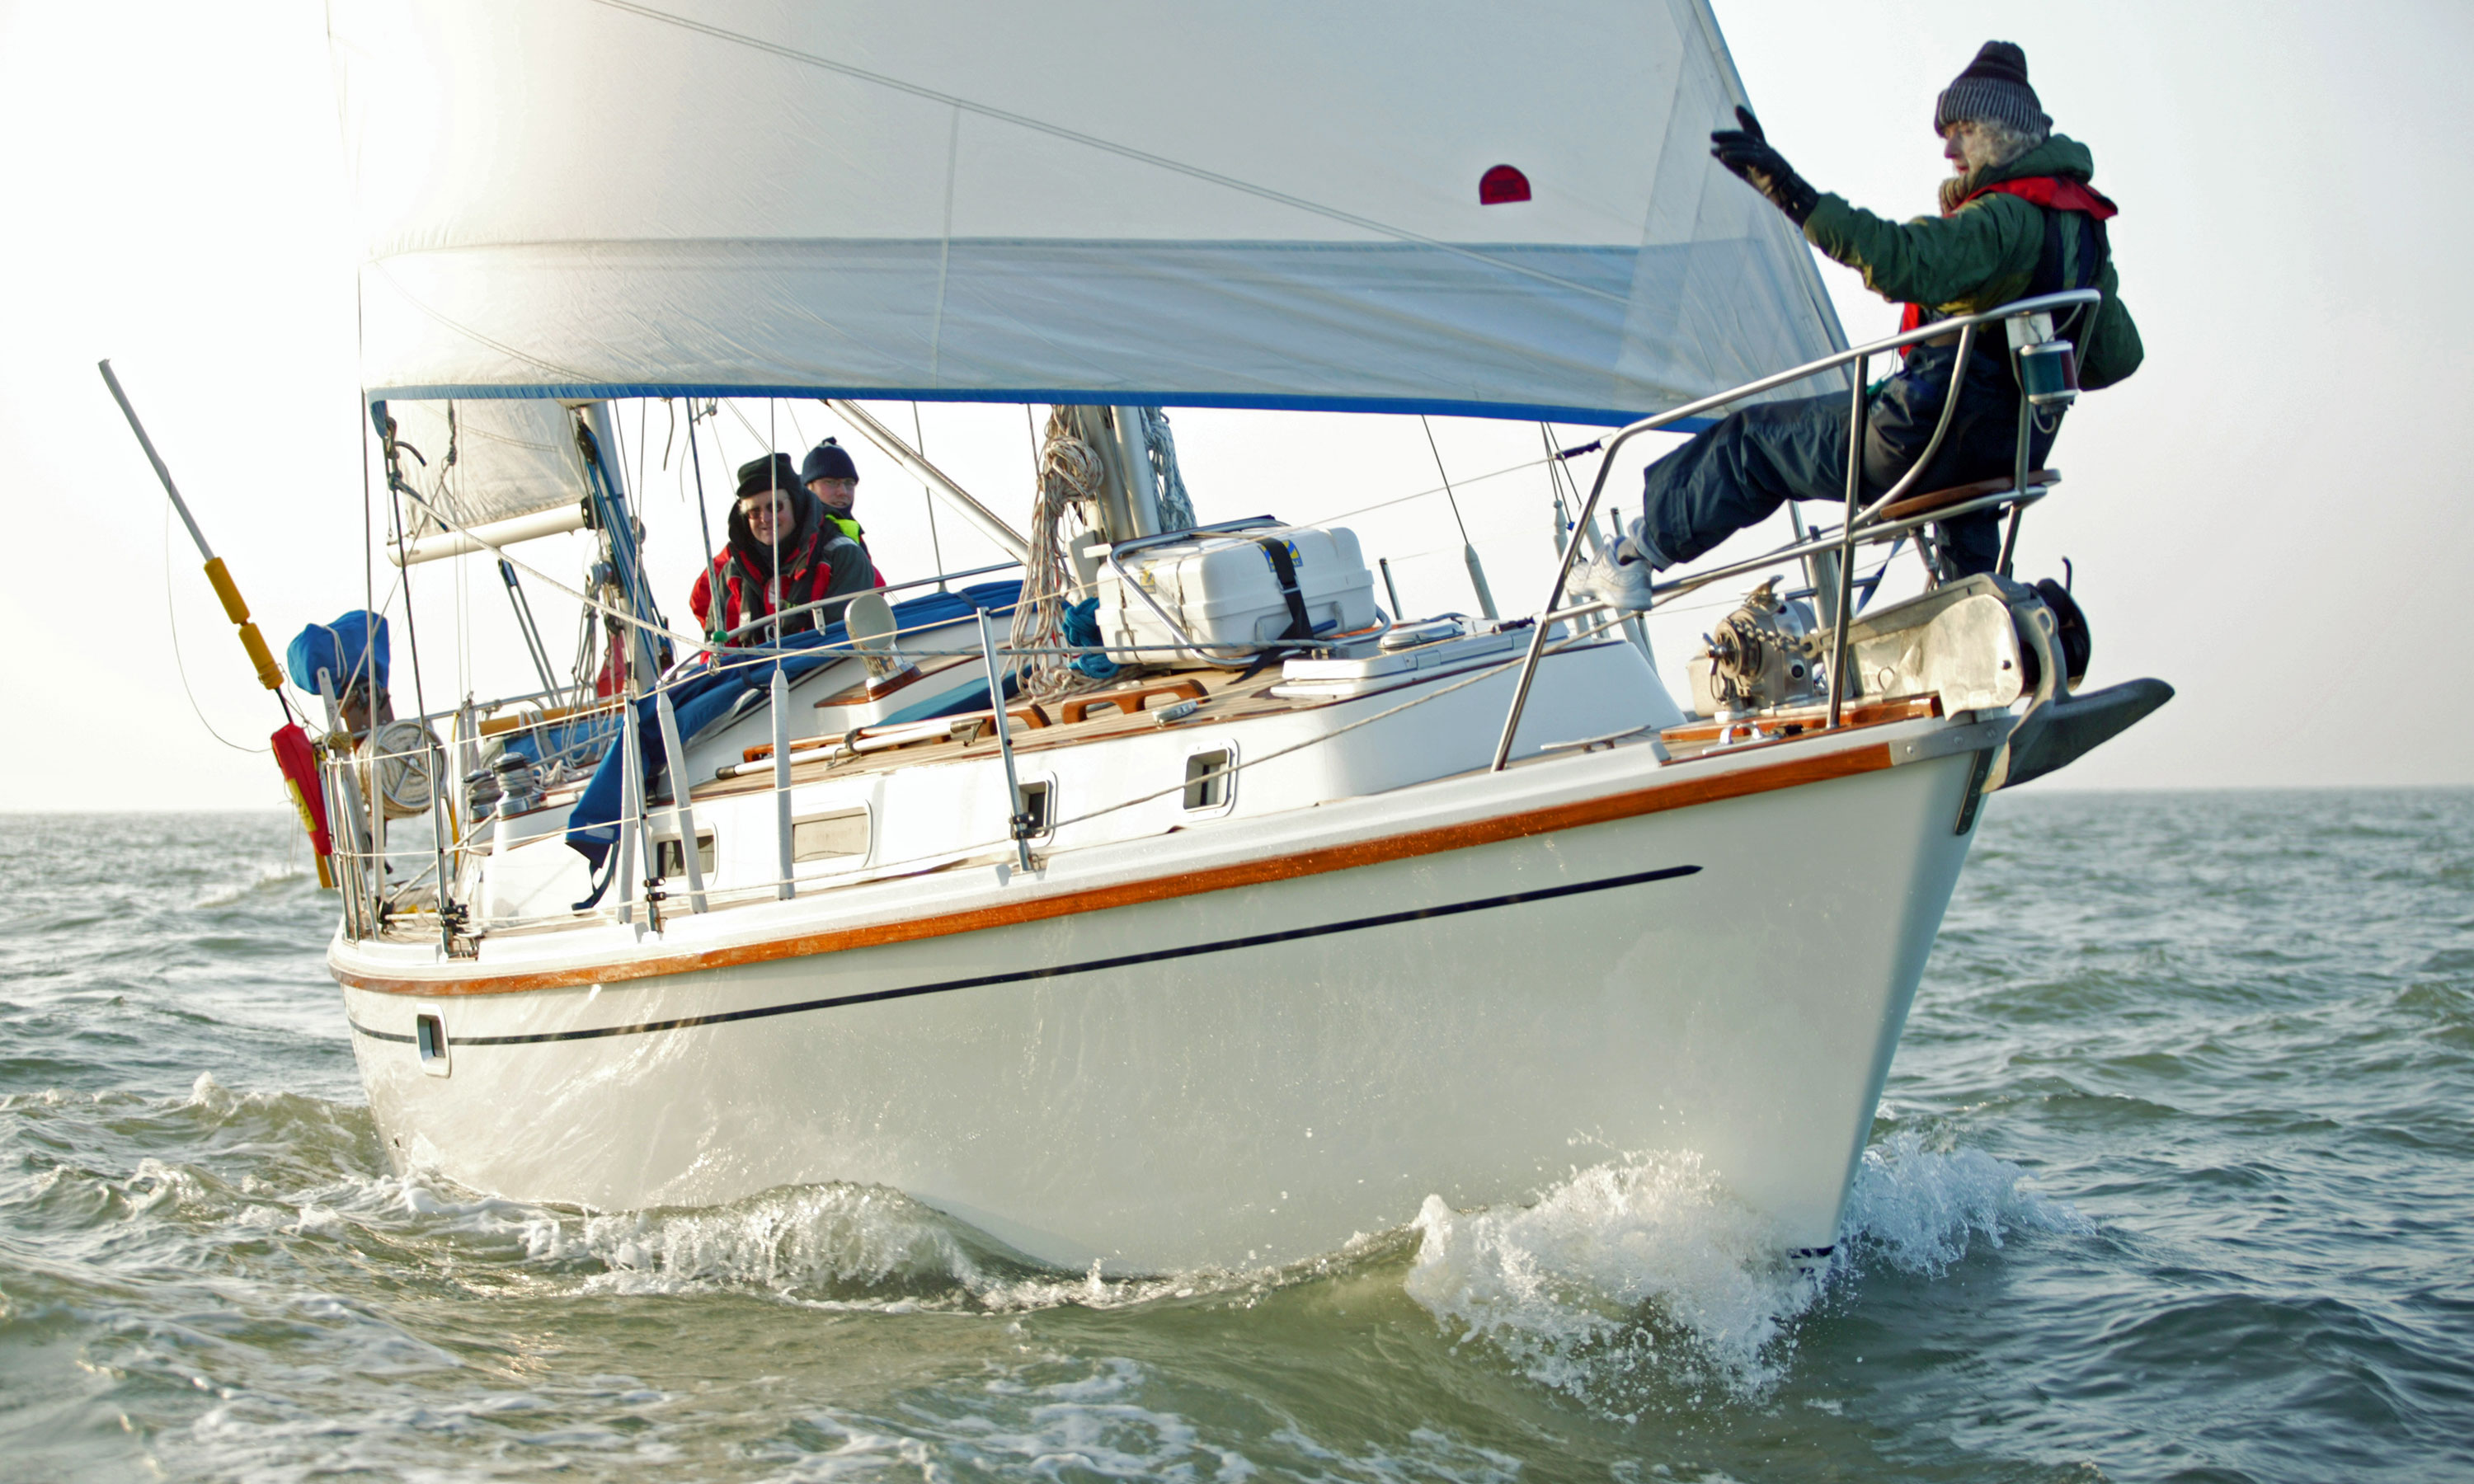 Westerly Conway 36 ketch-rigged sailboat